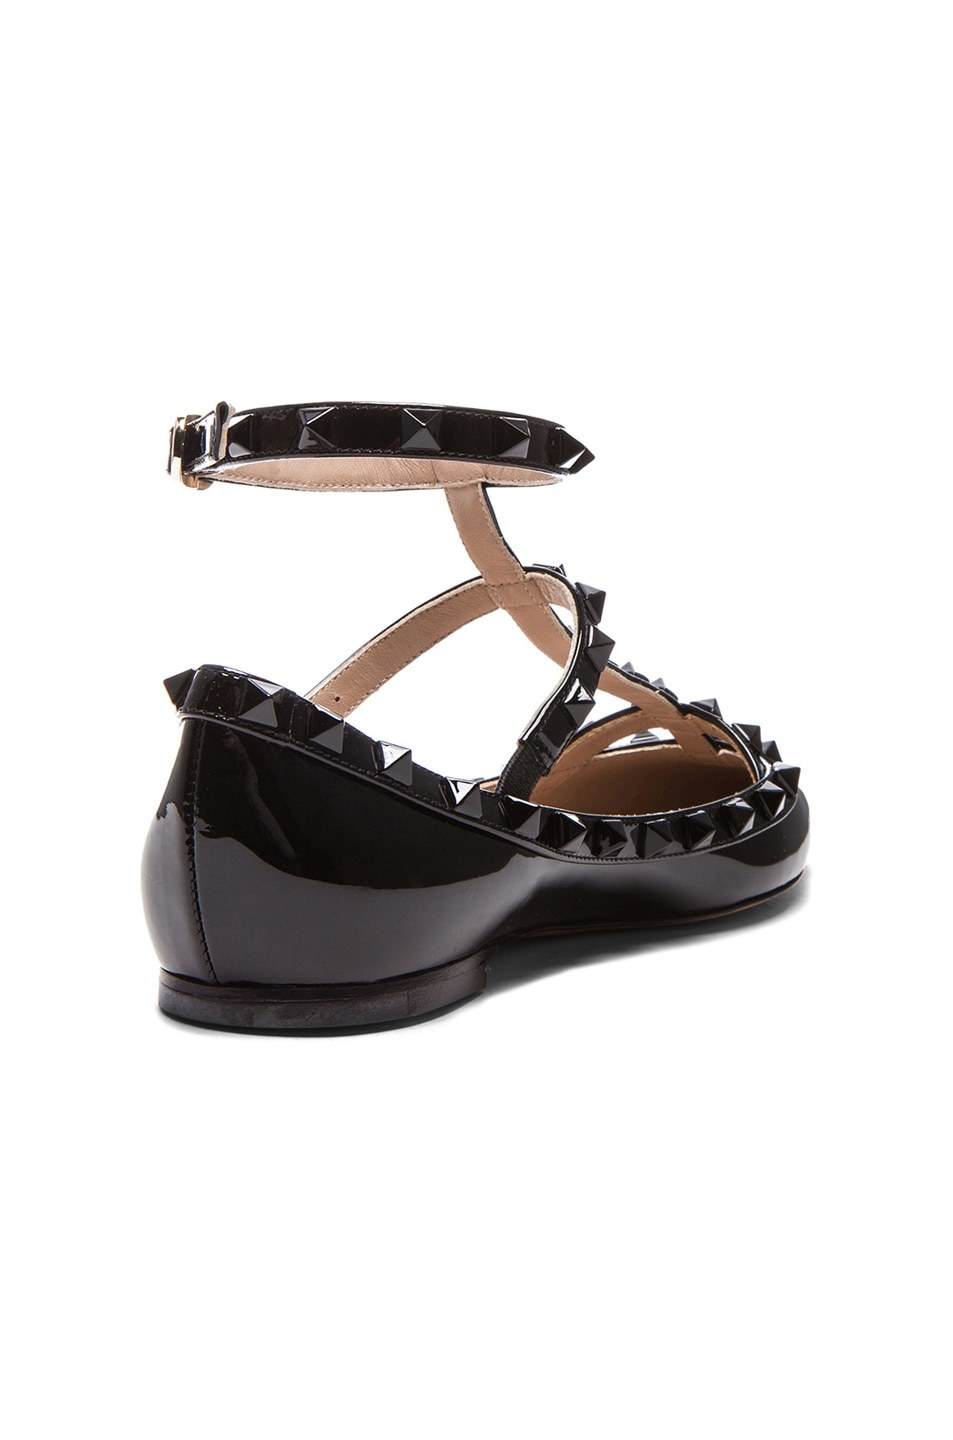 Image 3 of Valentino Rockstud Punkouture Patent Ballerina Flats in Black